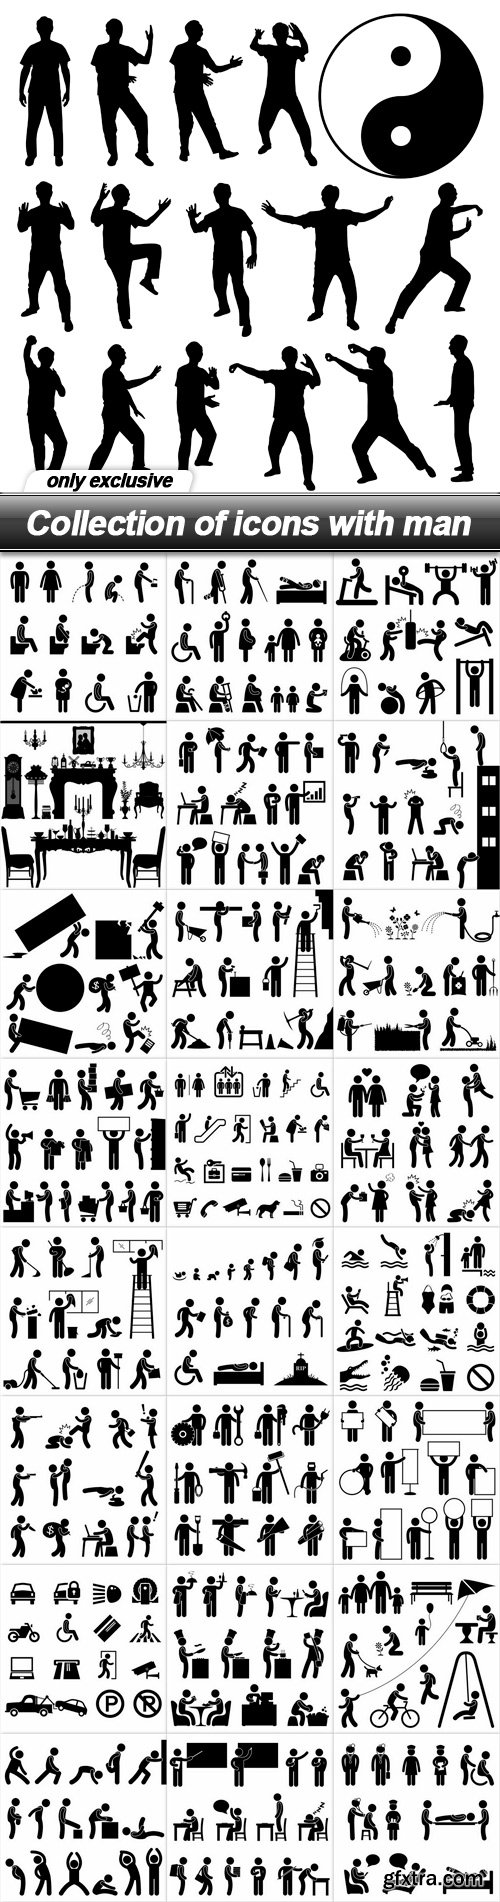 Collection of icons with man - 25 EPS